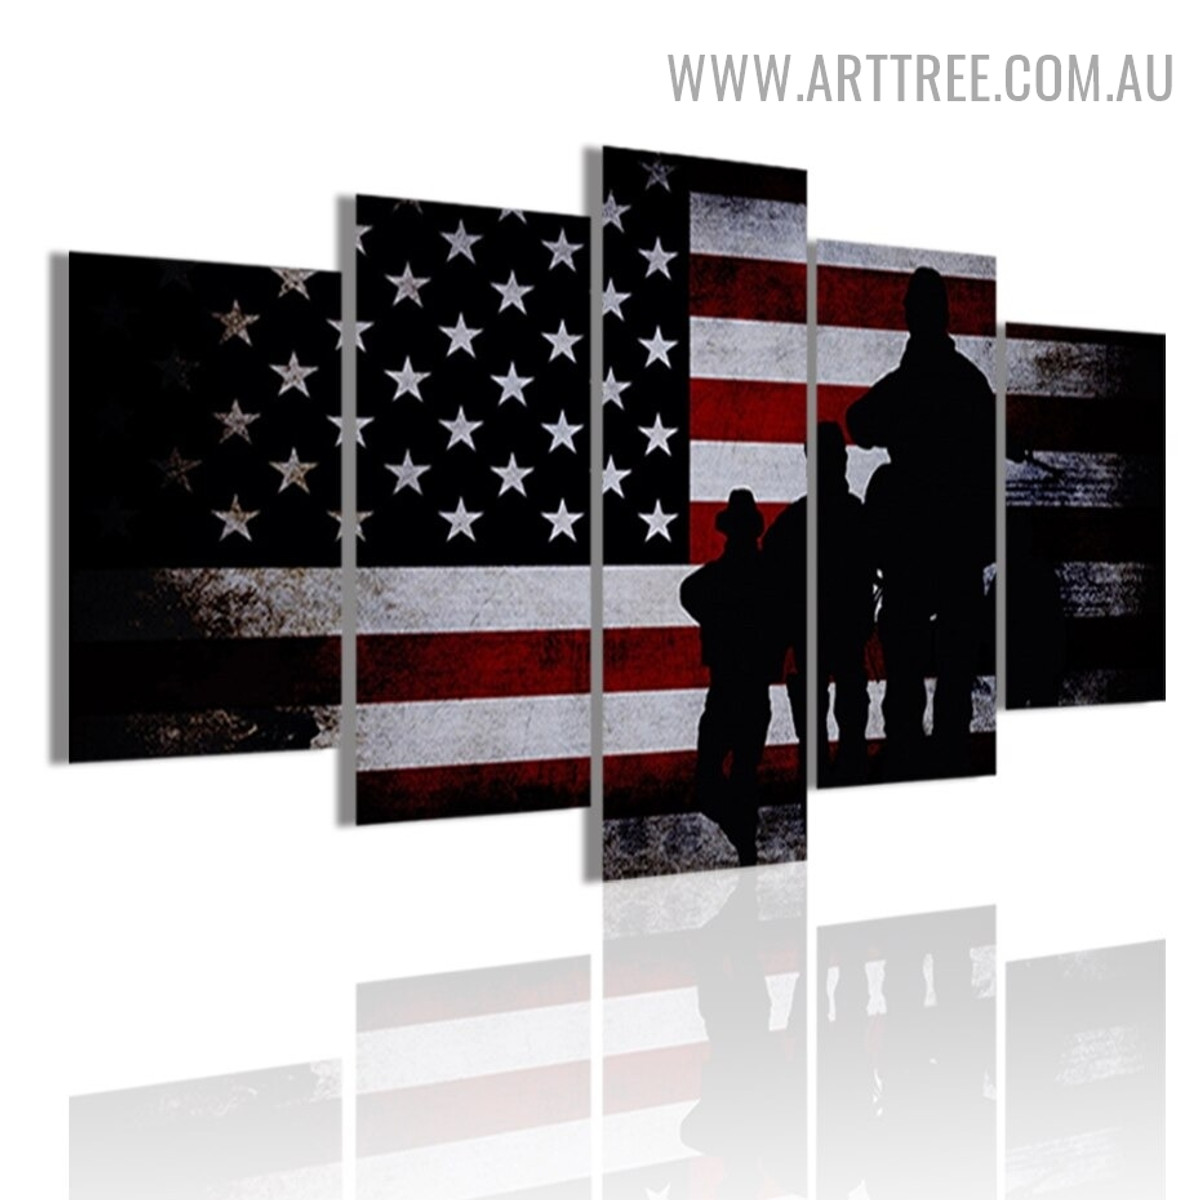 Military Army Soldiers Figure Modern Abstract 5 Multi Panel Image Canvas Art Print for Room Wall Ornament